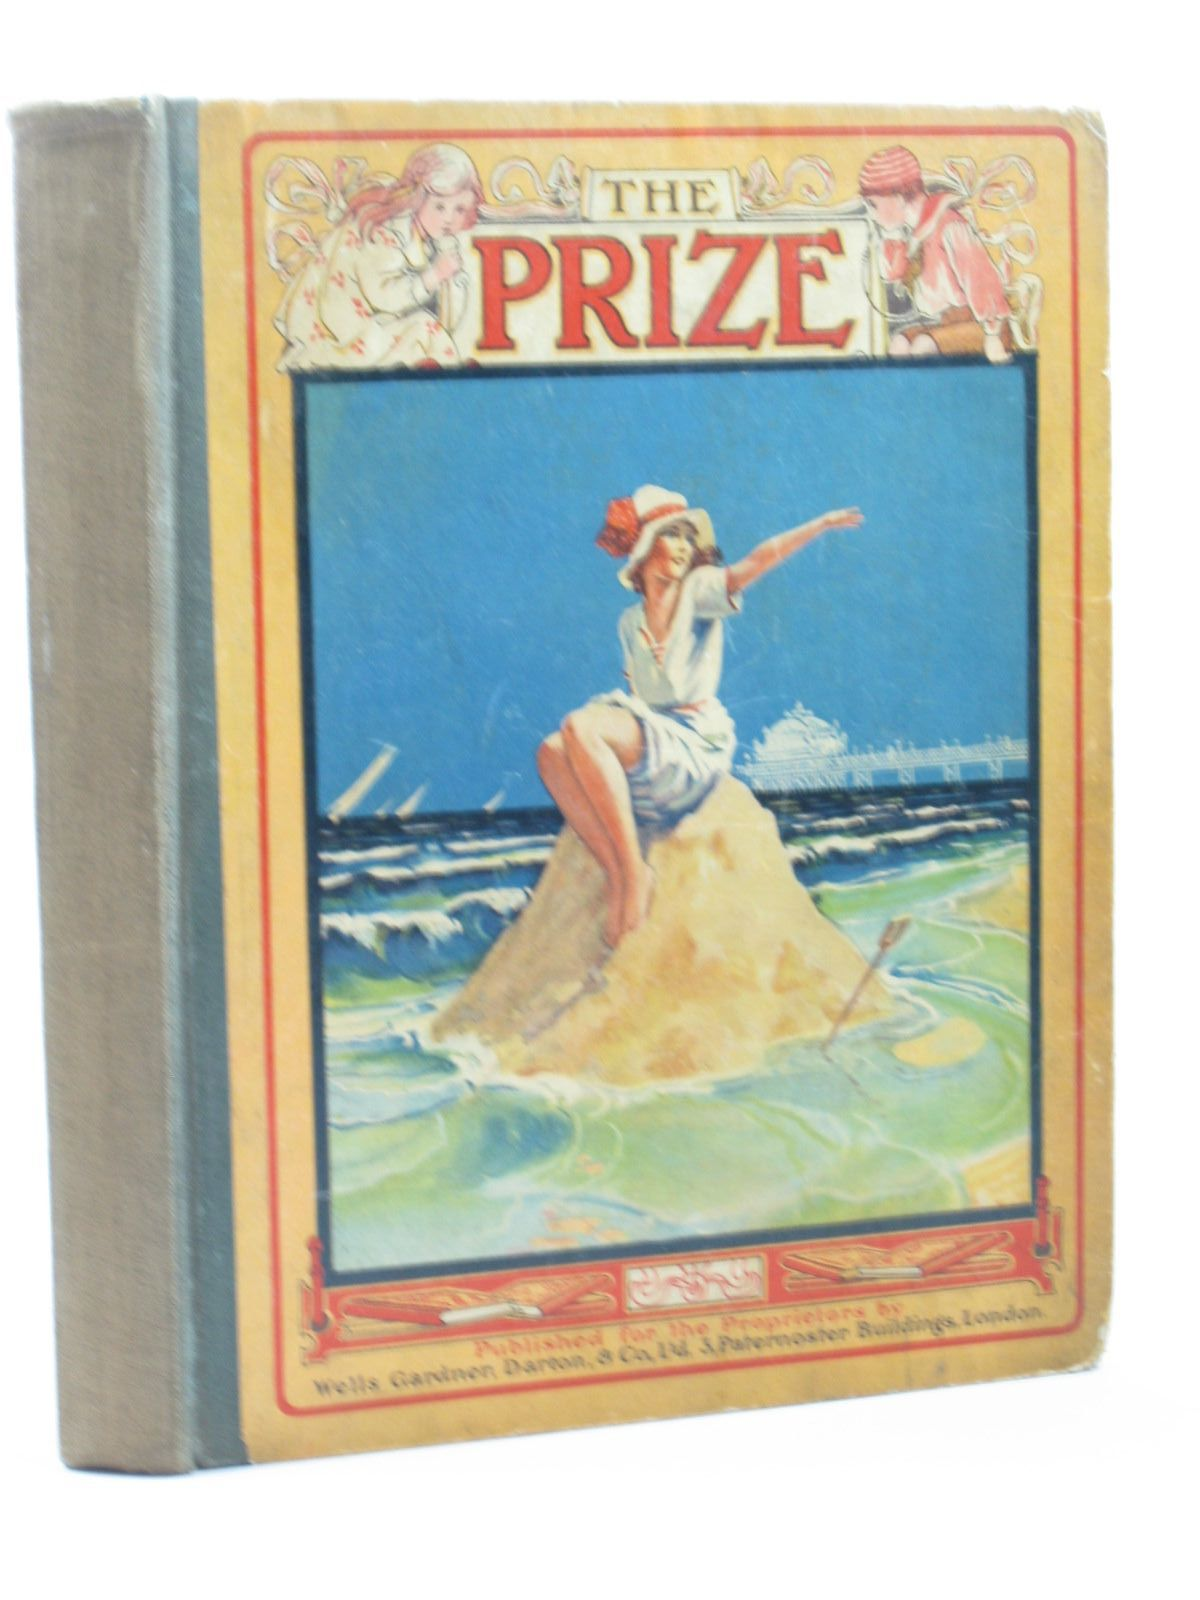 Photo of THE PRIZE FOR GIRLS AND BOYS published by Wells Gardner, Darton & Co. Ltd. (STOCK CODE: 1502681)  for sale by Stella & Rose's Books